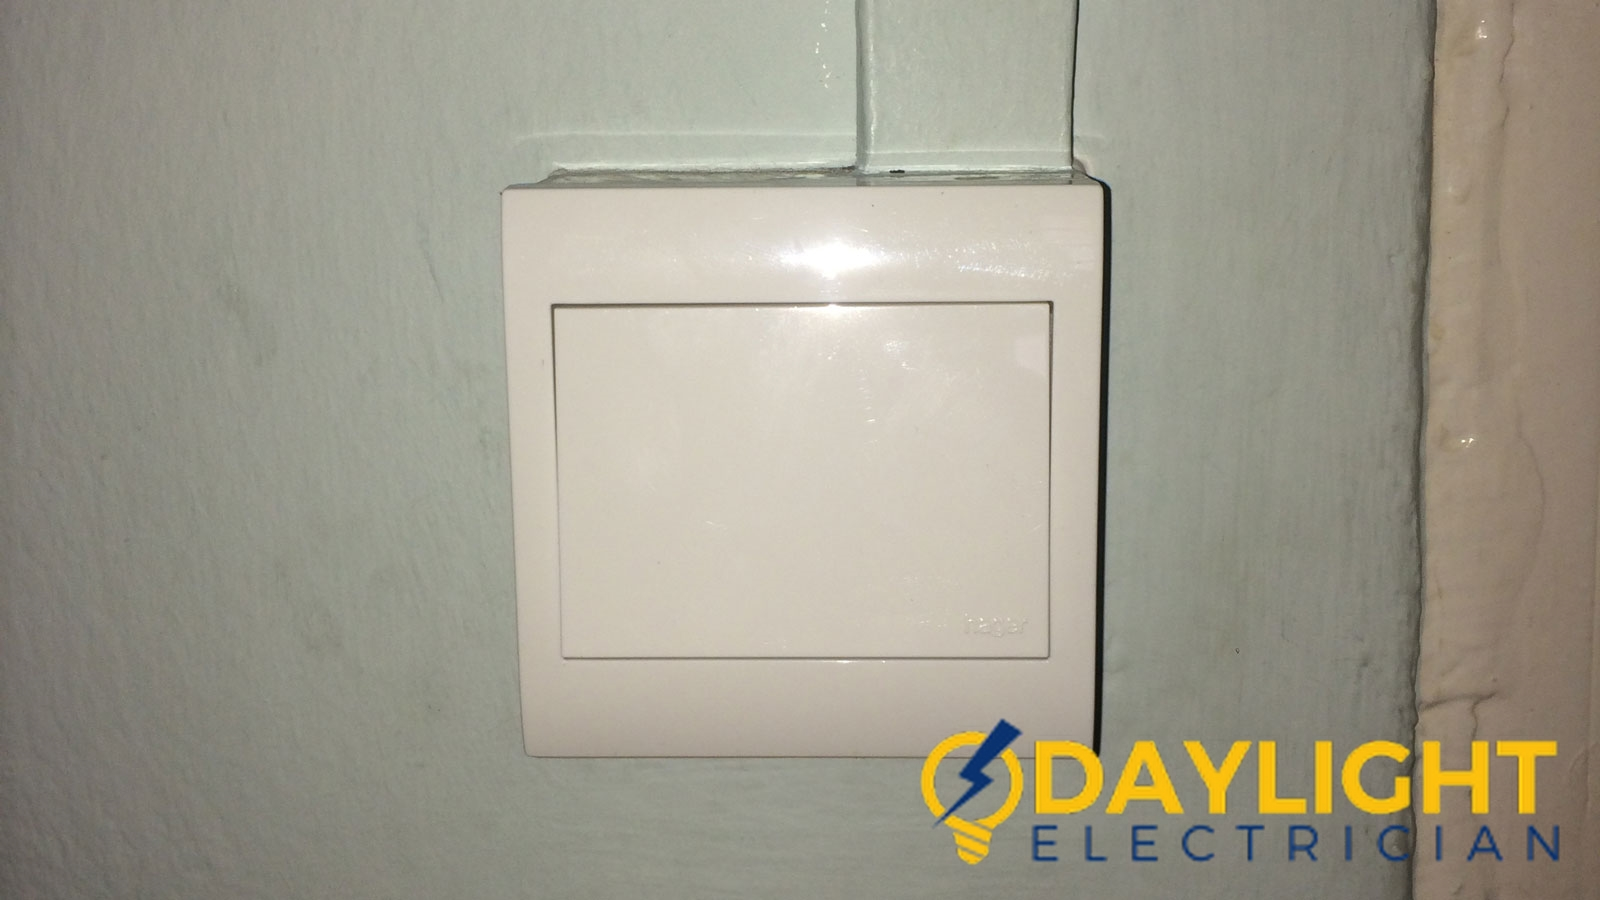 light switch replacement daylight electrician singapore hdb punggol 2 wm